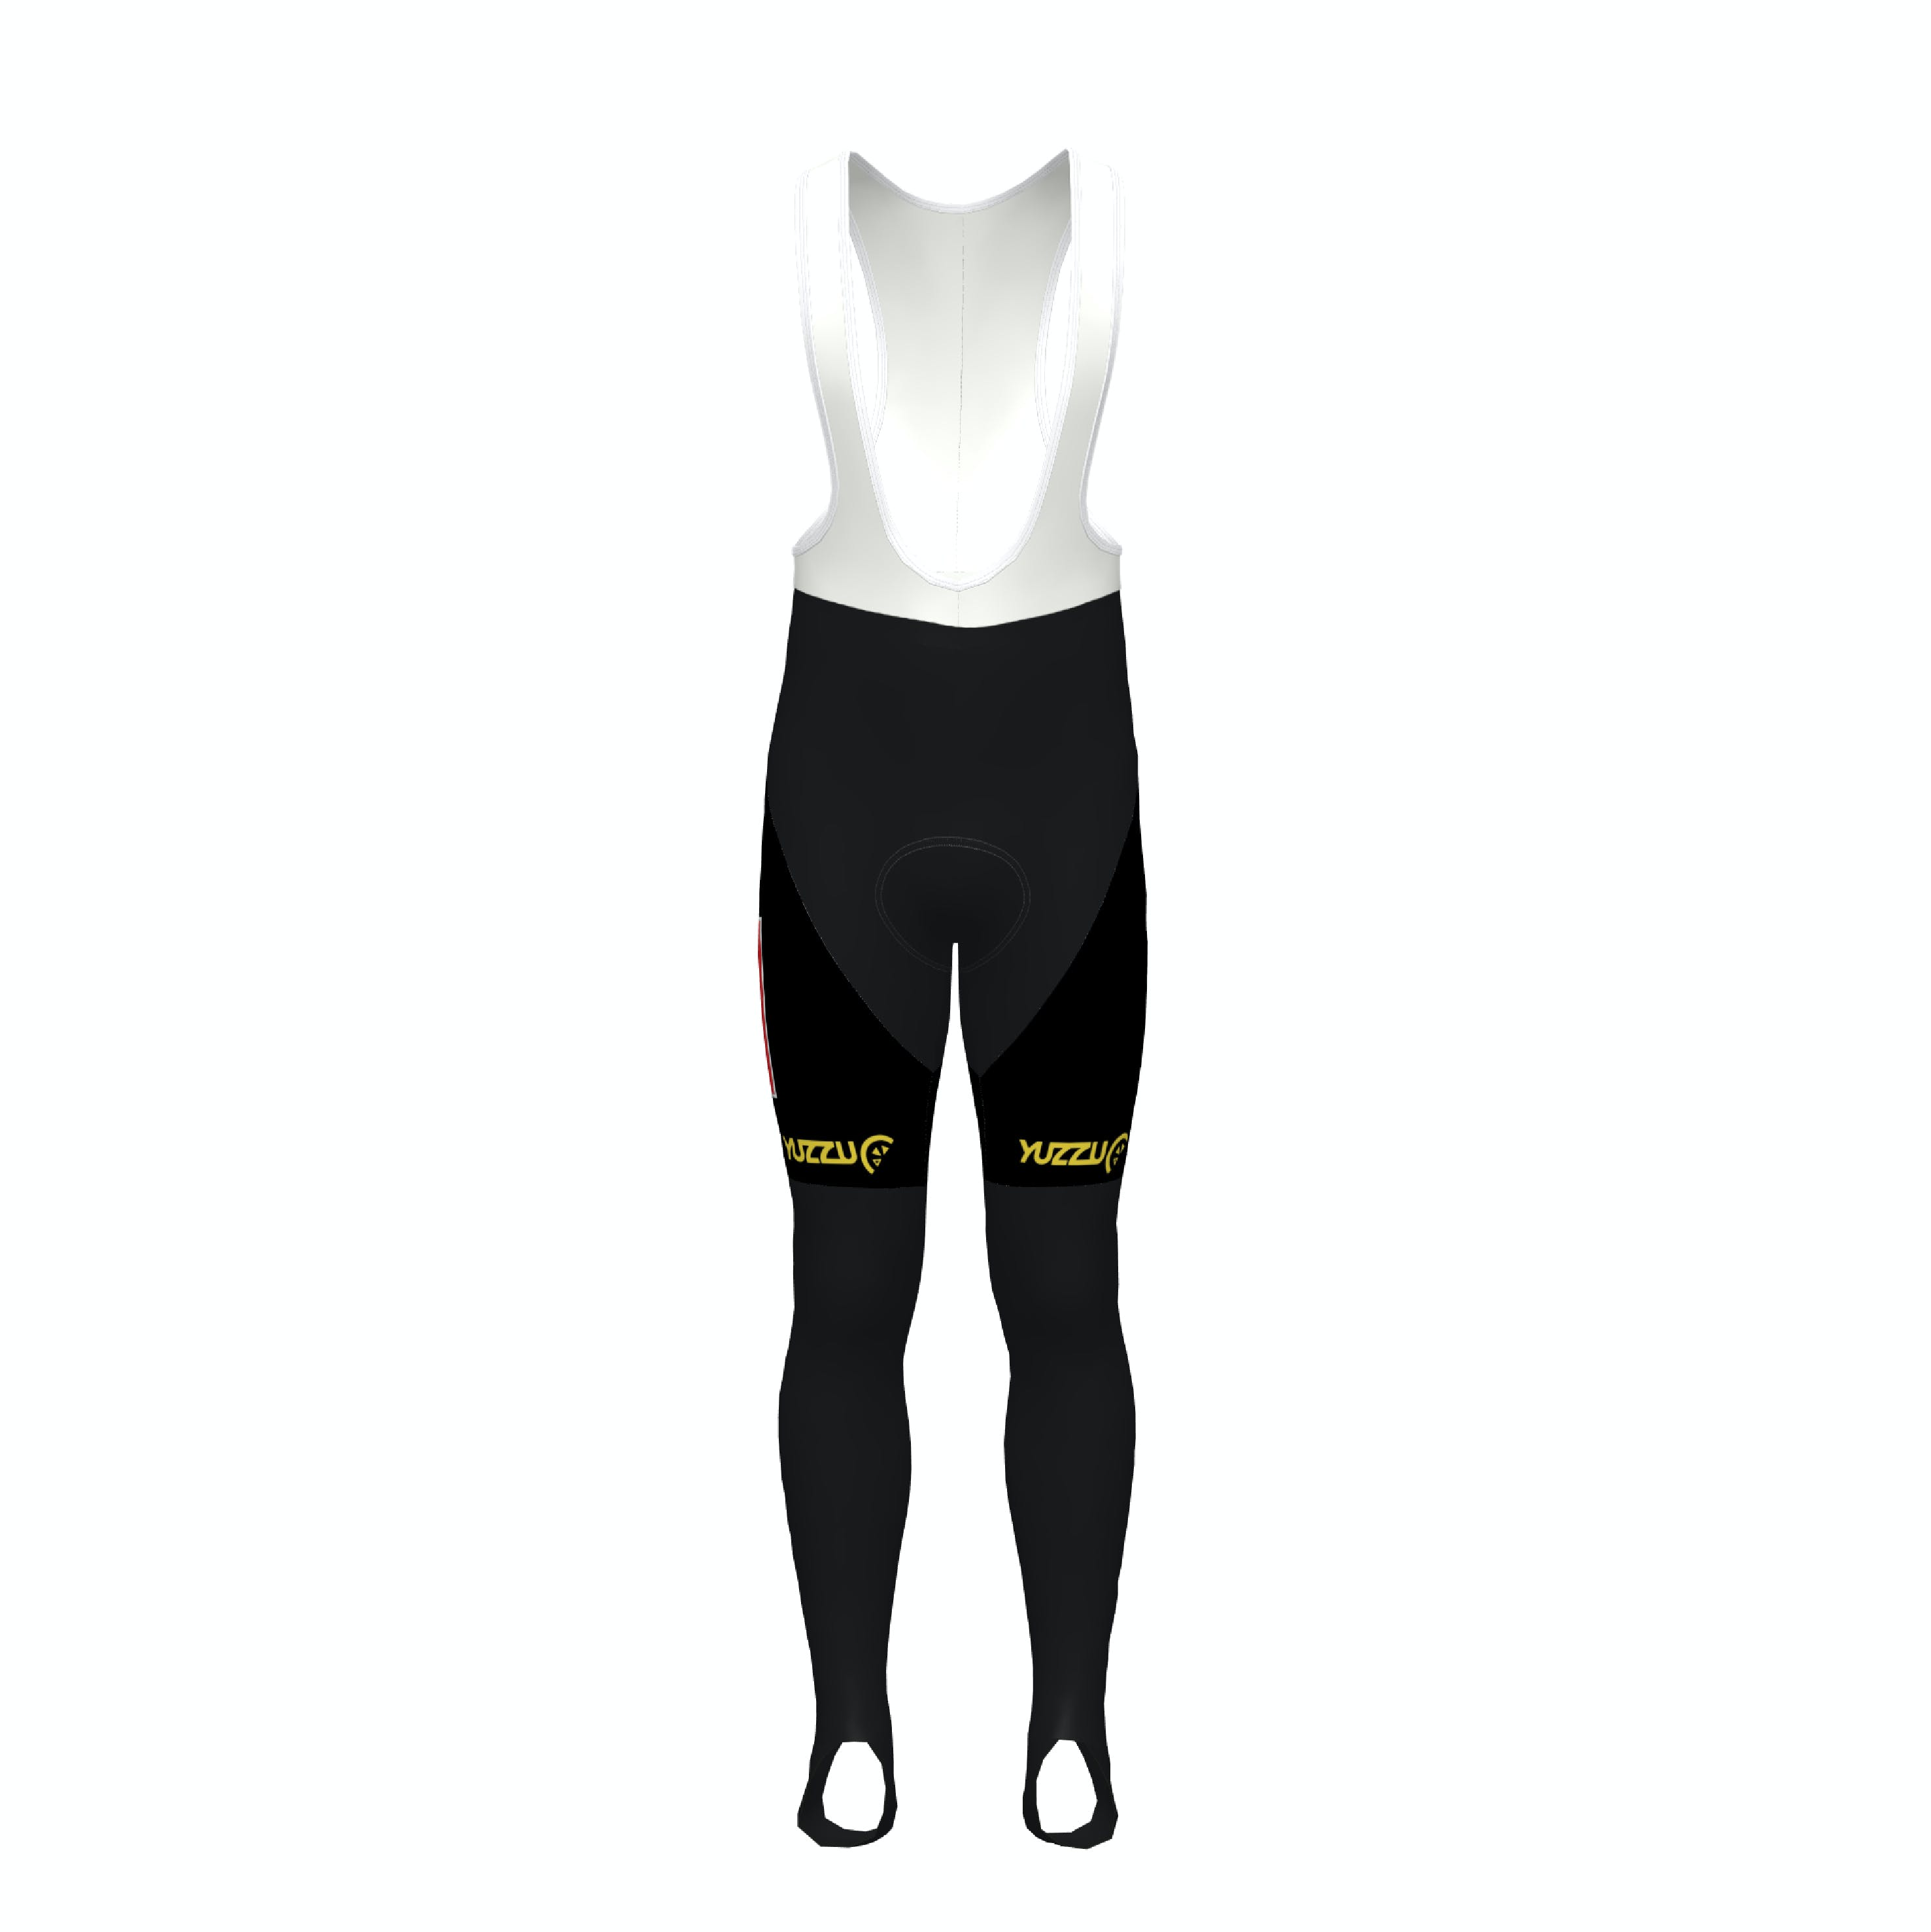 Soudal Lotto 2020 Bib Tights + insert Roubaix  ES.L